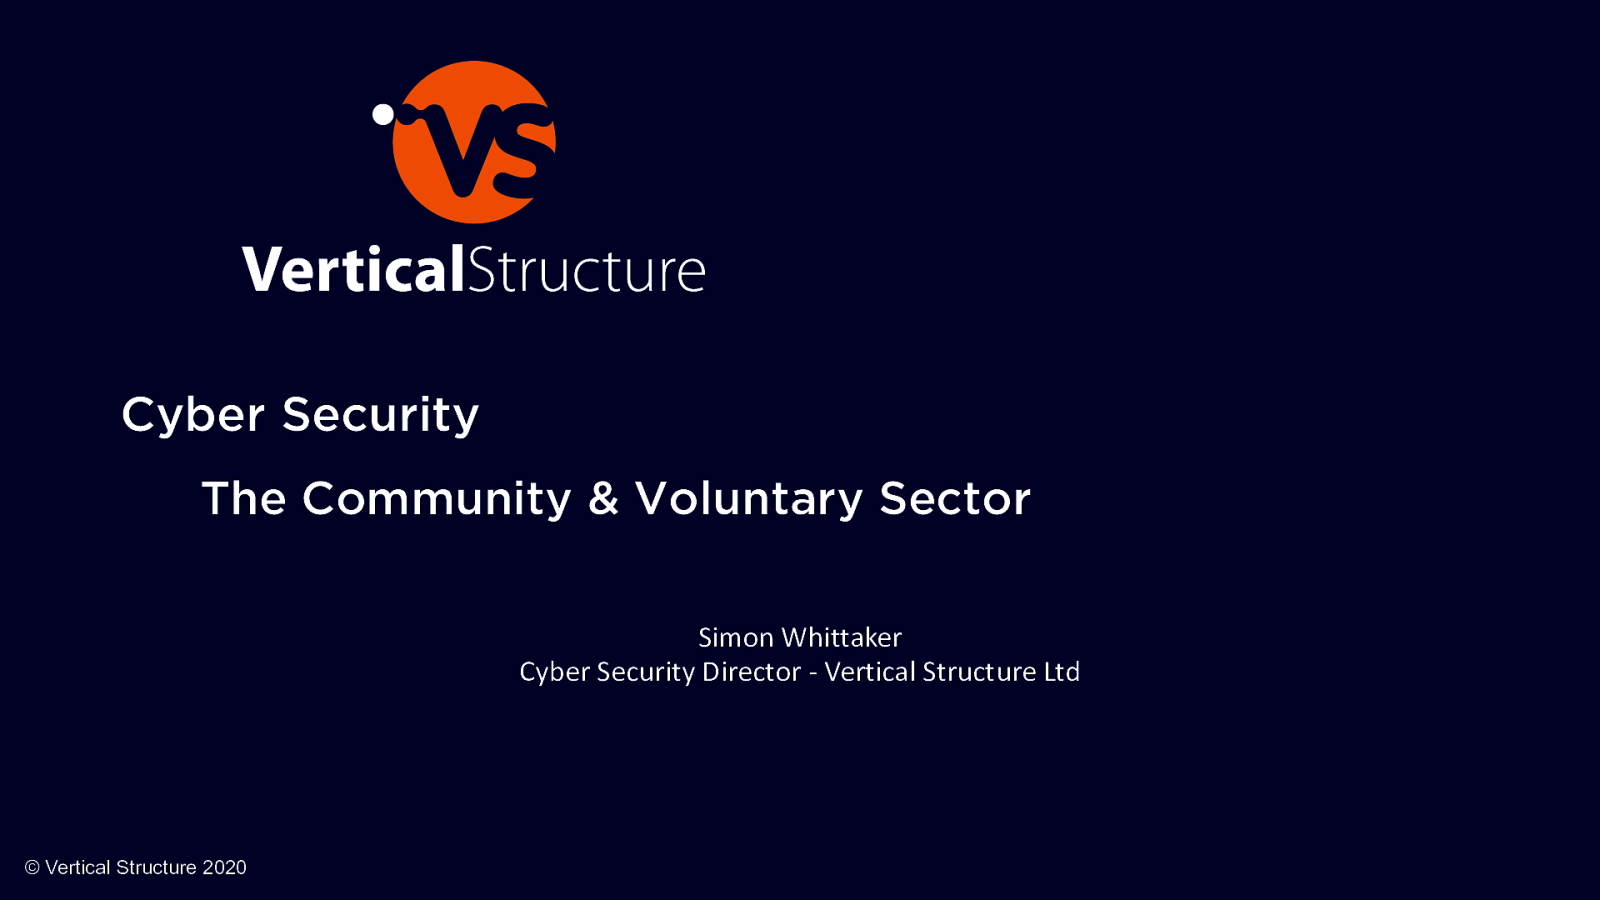 Cyber Security The Community & Voluntary Sector